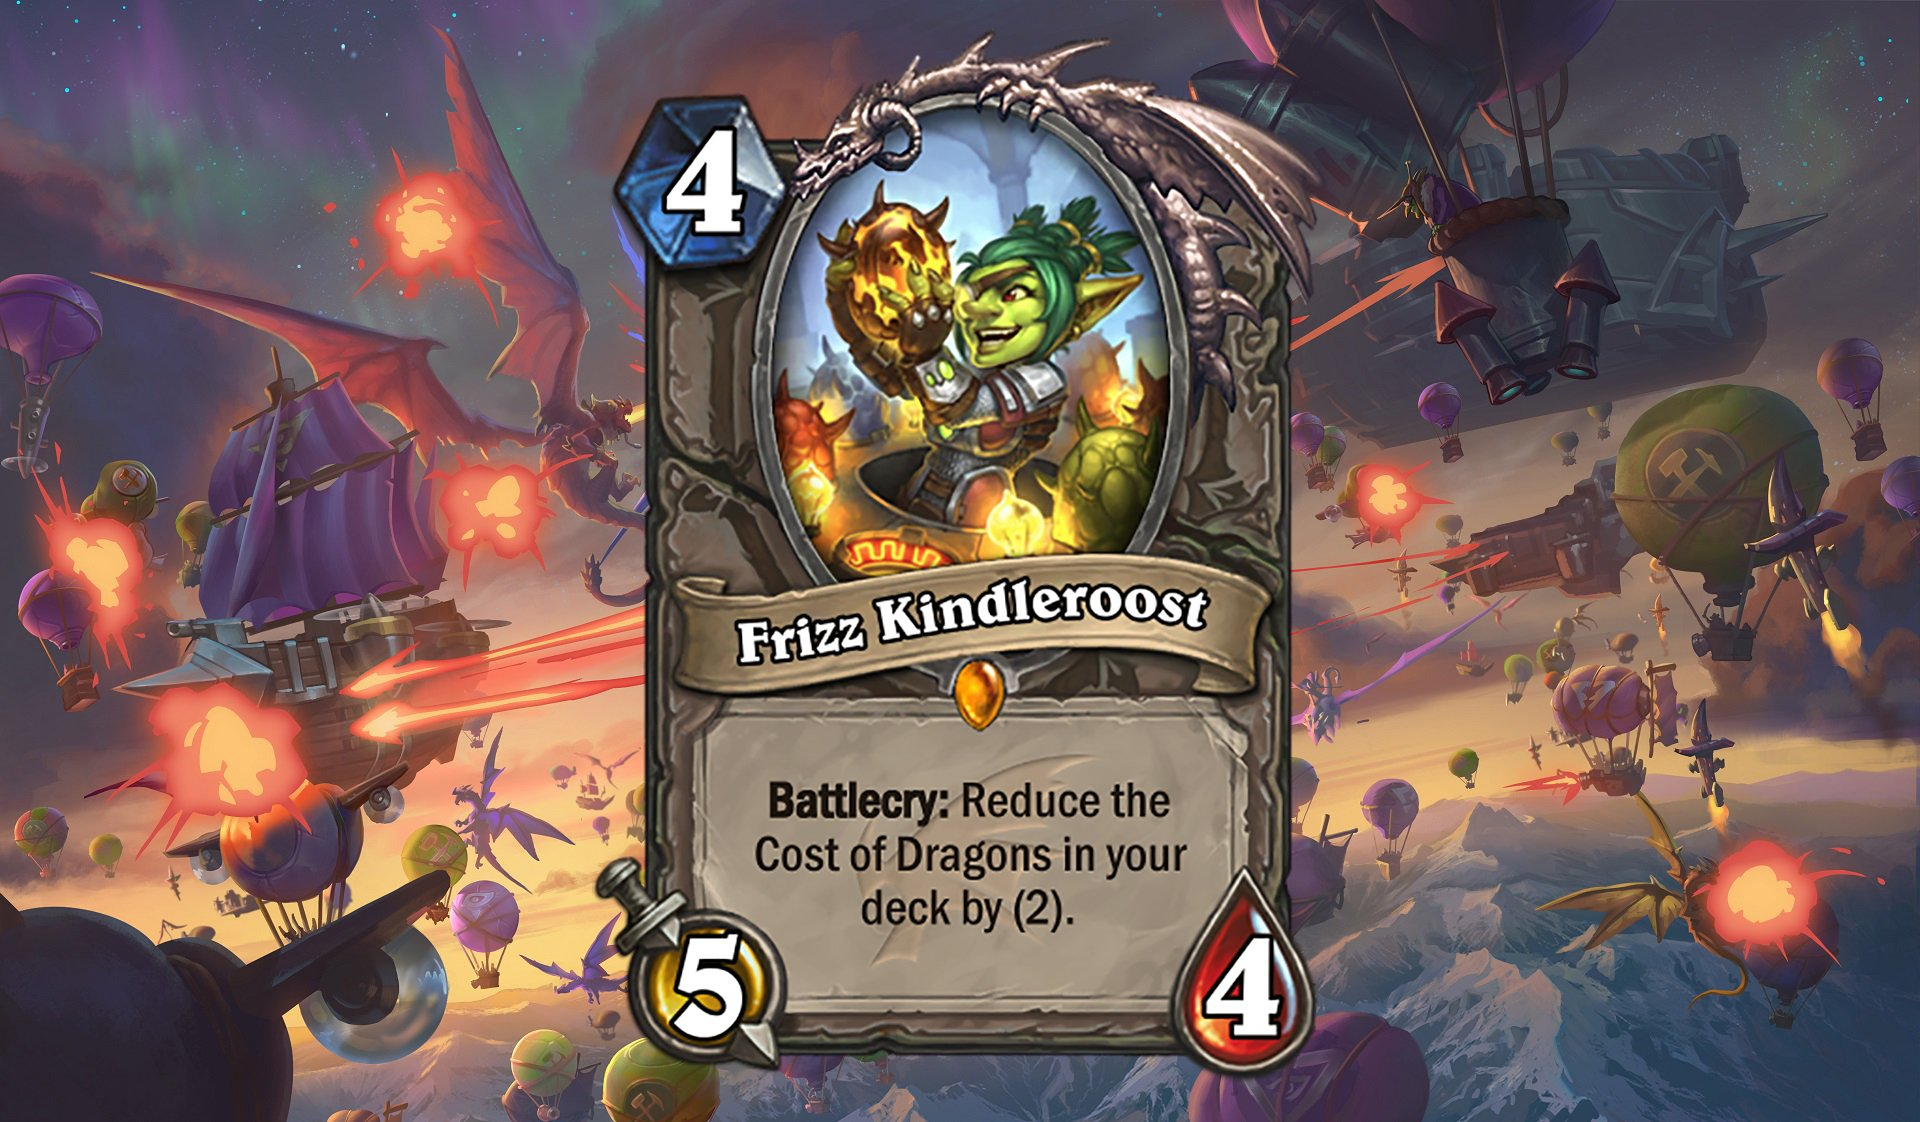 Hearthstone - Frizz Kindleroost